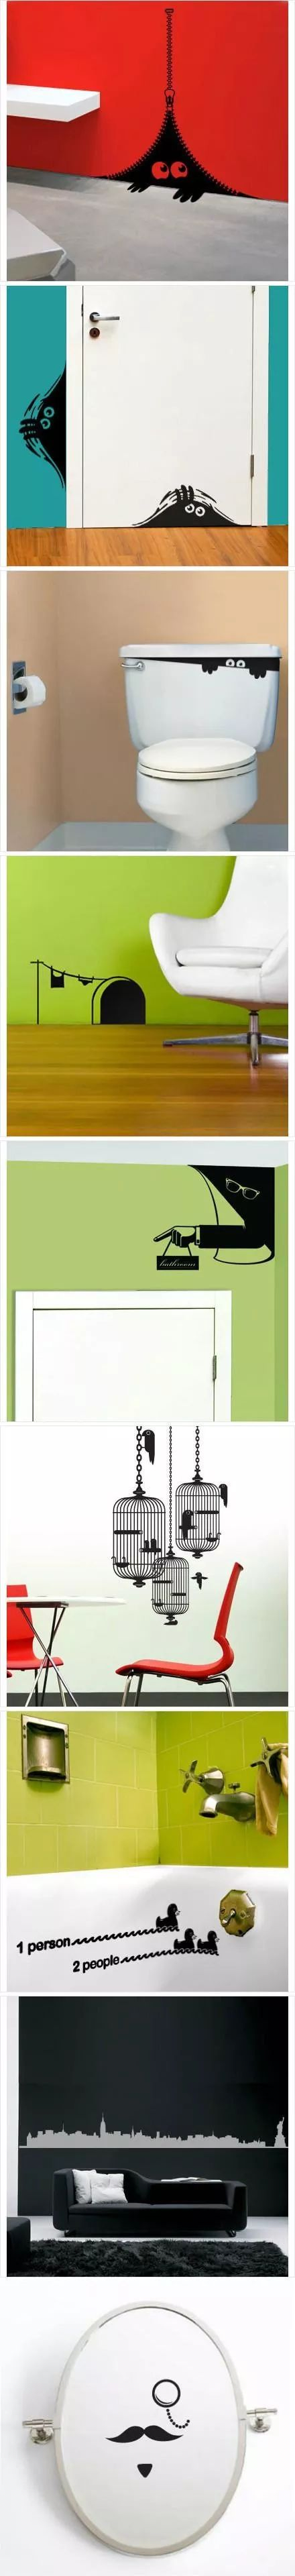 20 Best Switchboard Art Images On Pinterest Wall